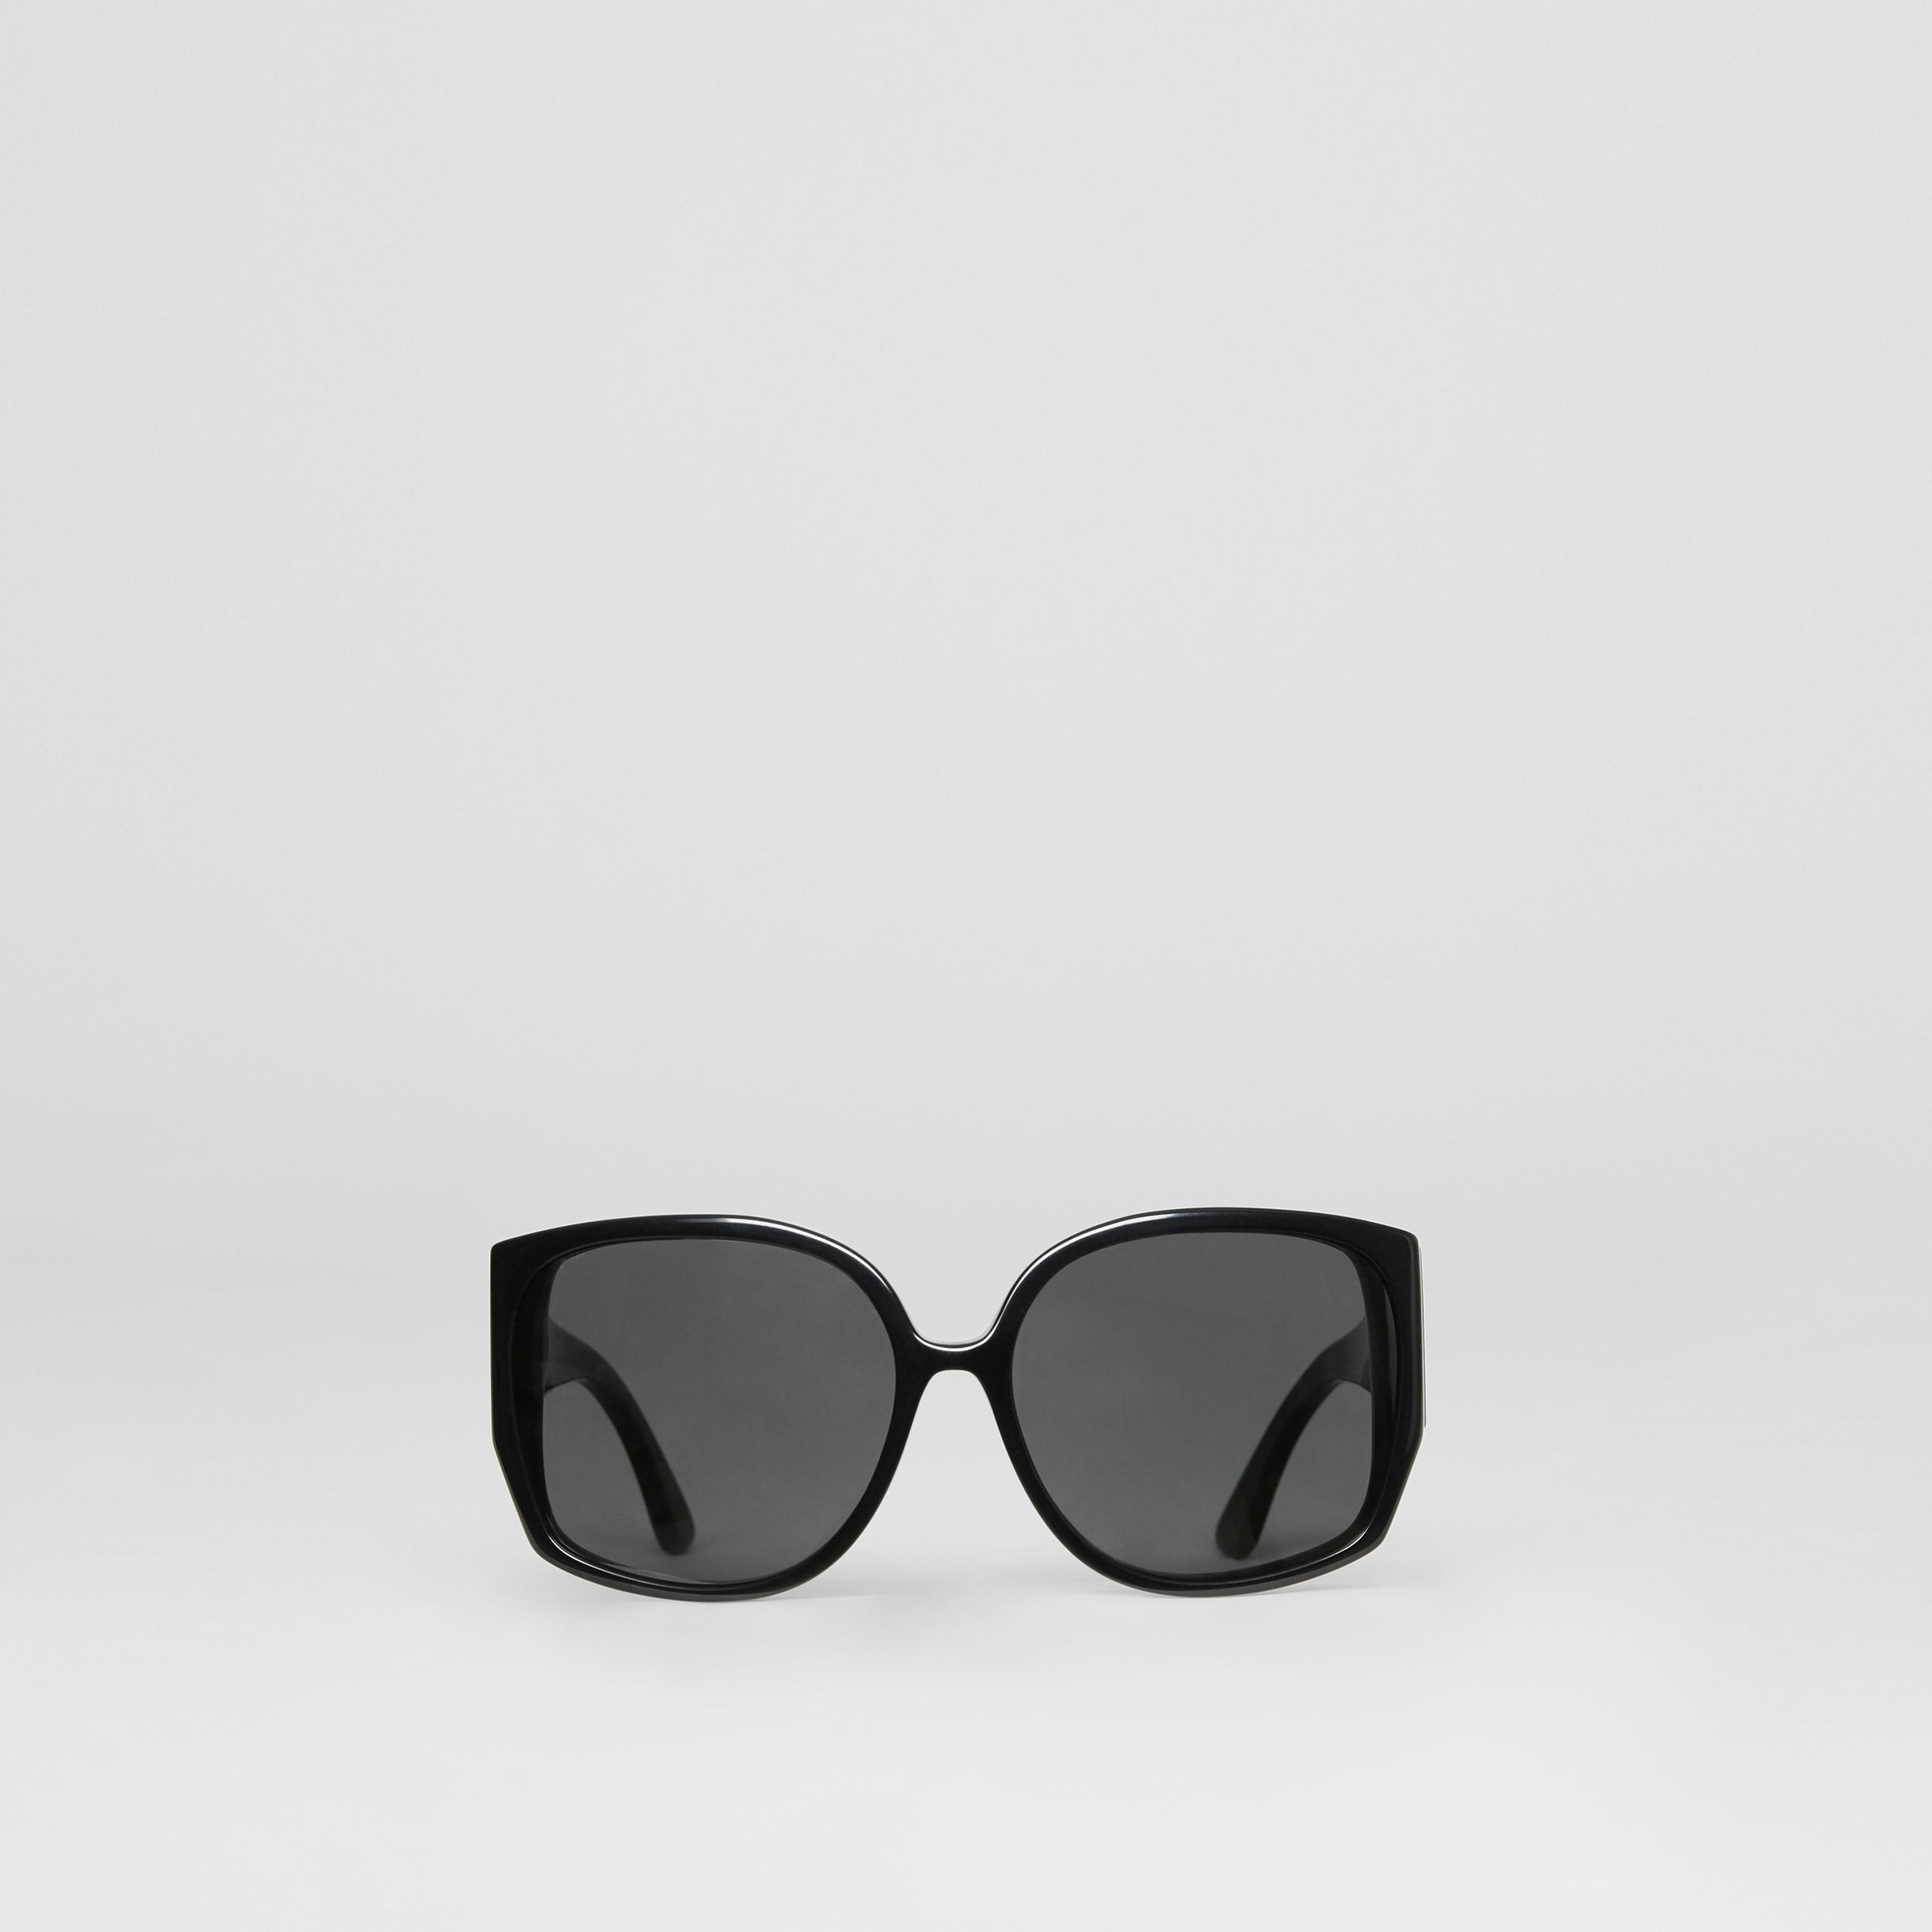 Oversized Butterfly Frame Sunglasses in Black - Women | Burberry - 1